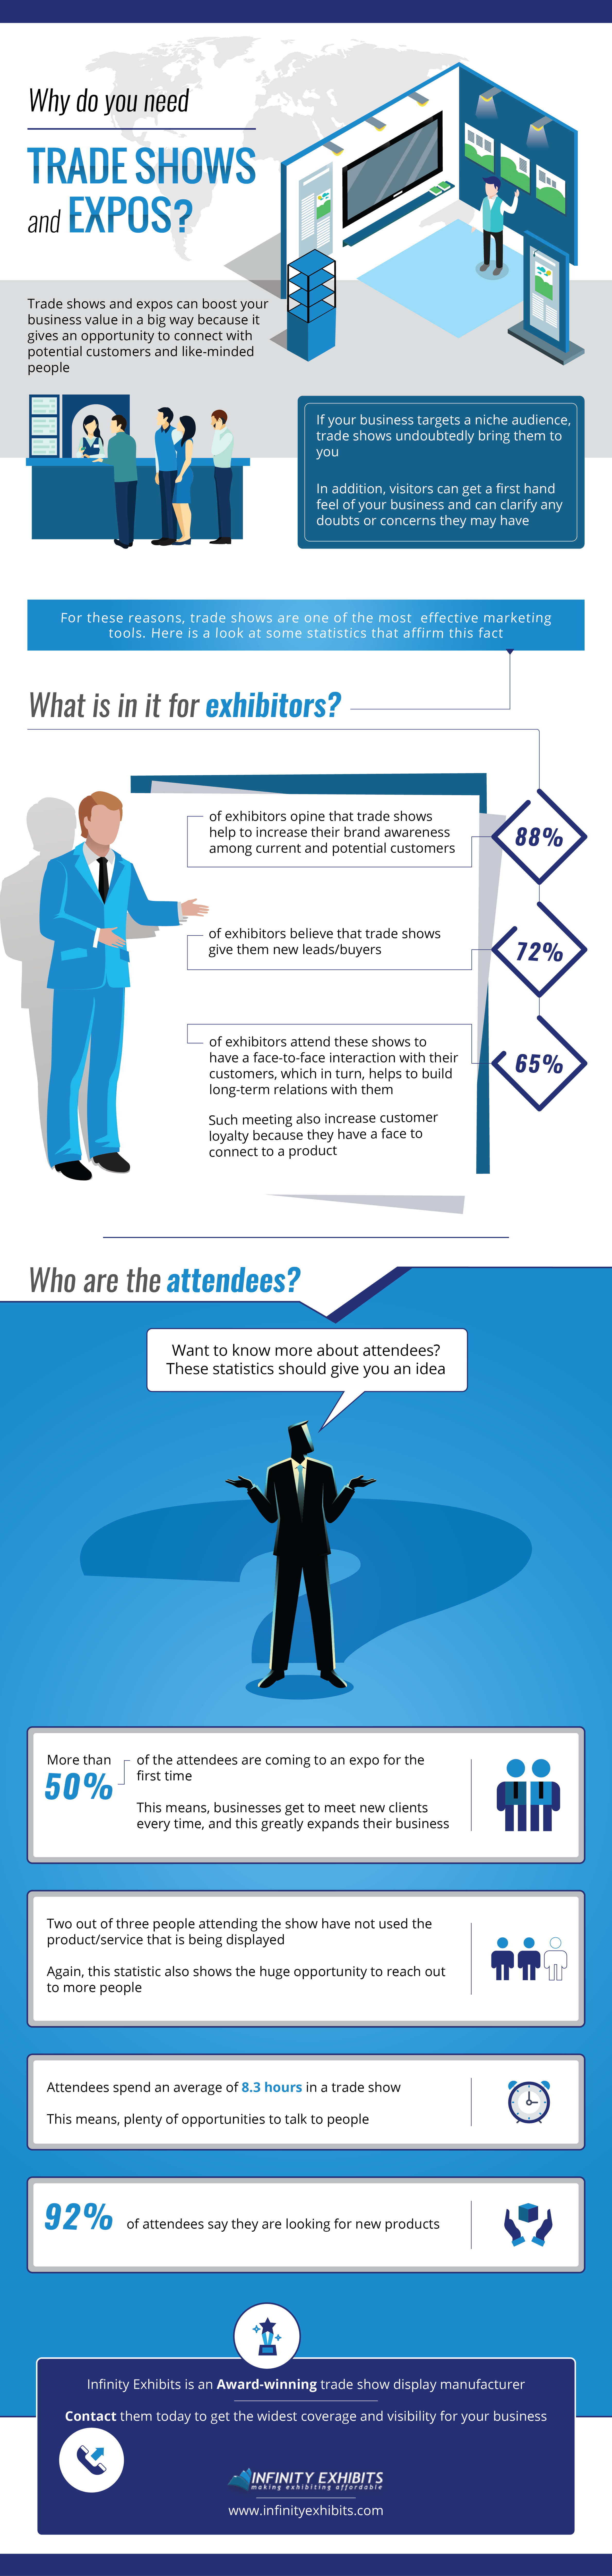 Why do you need trade shows and expos?